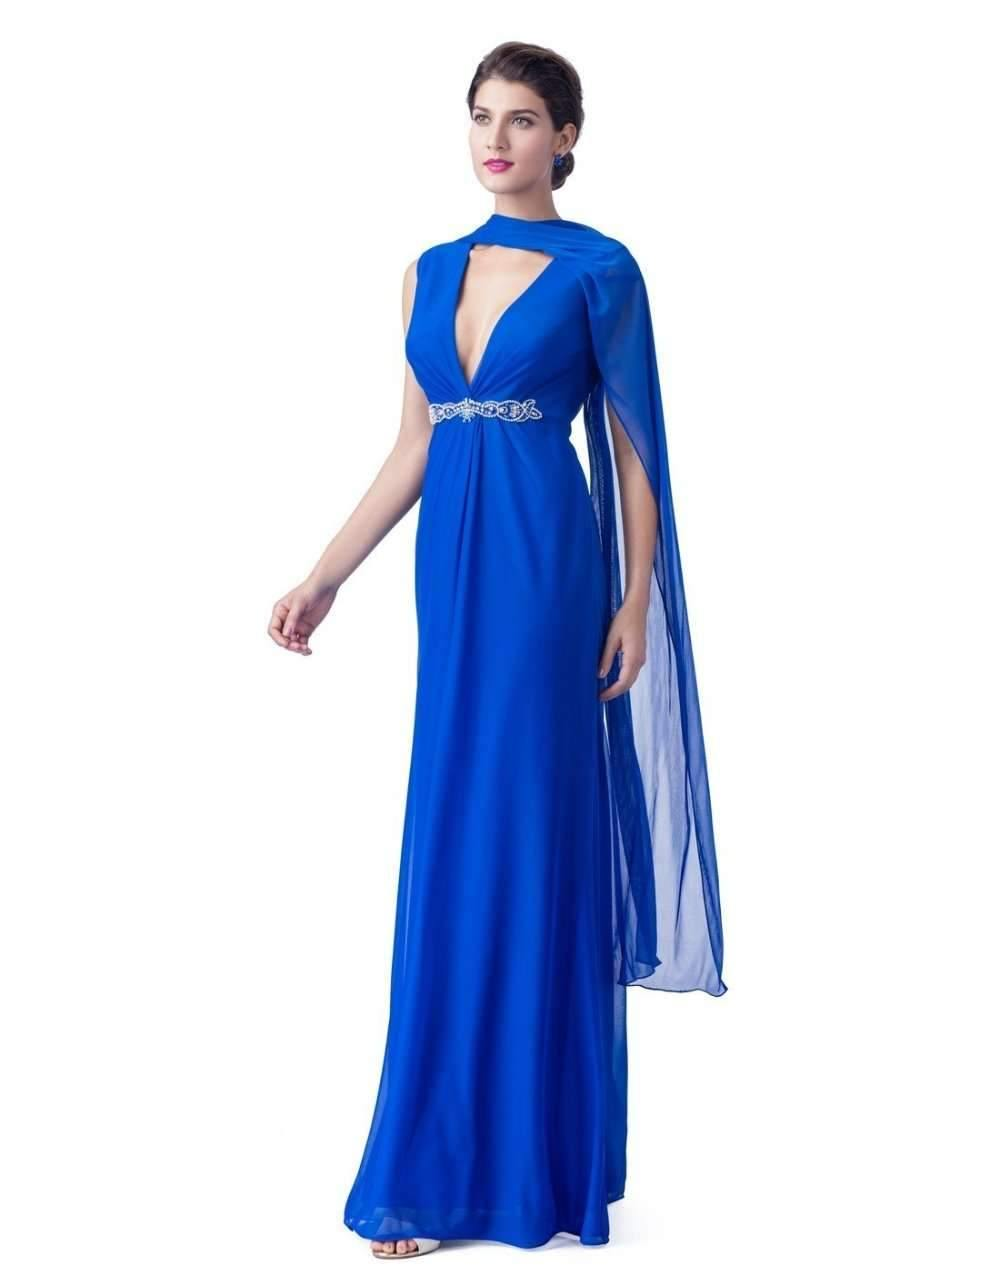 UK12 COBALT - INDIA - SALE - Adore Bridal and Occasion Wear